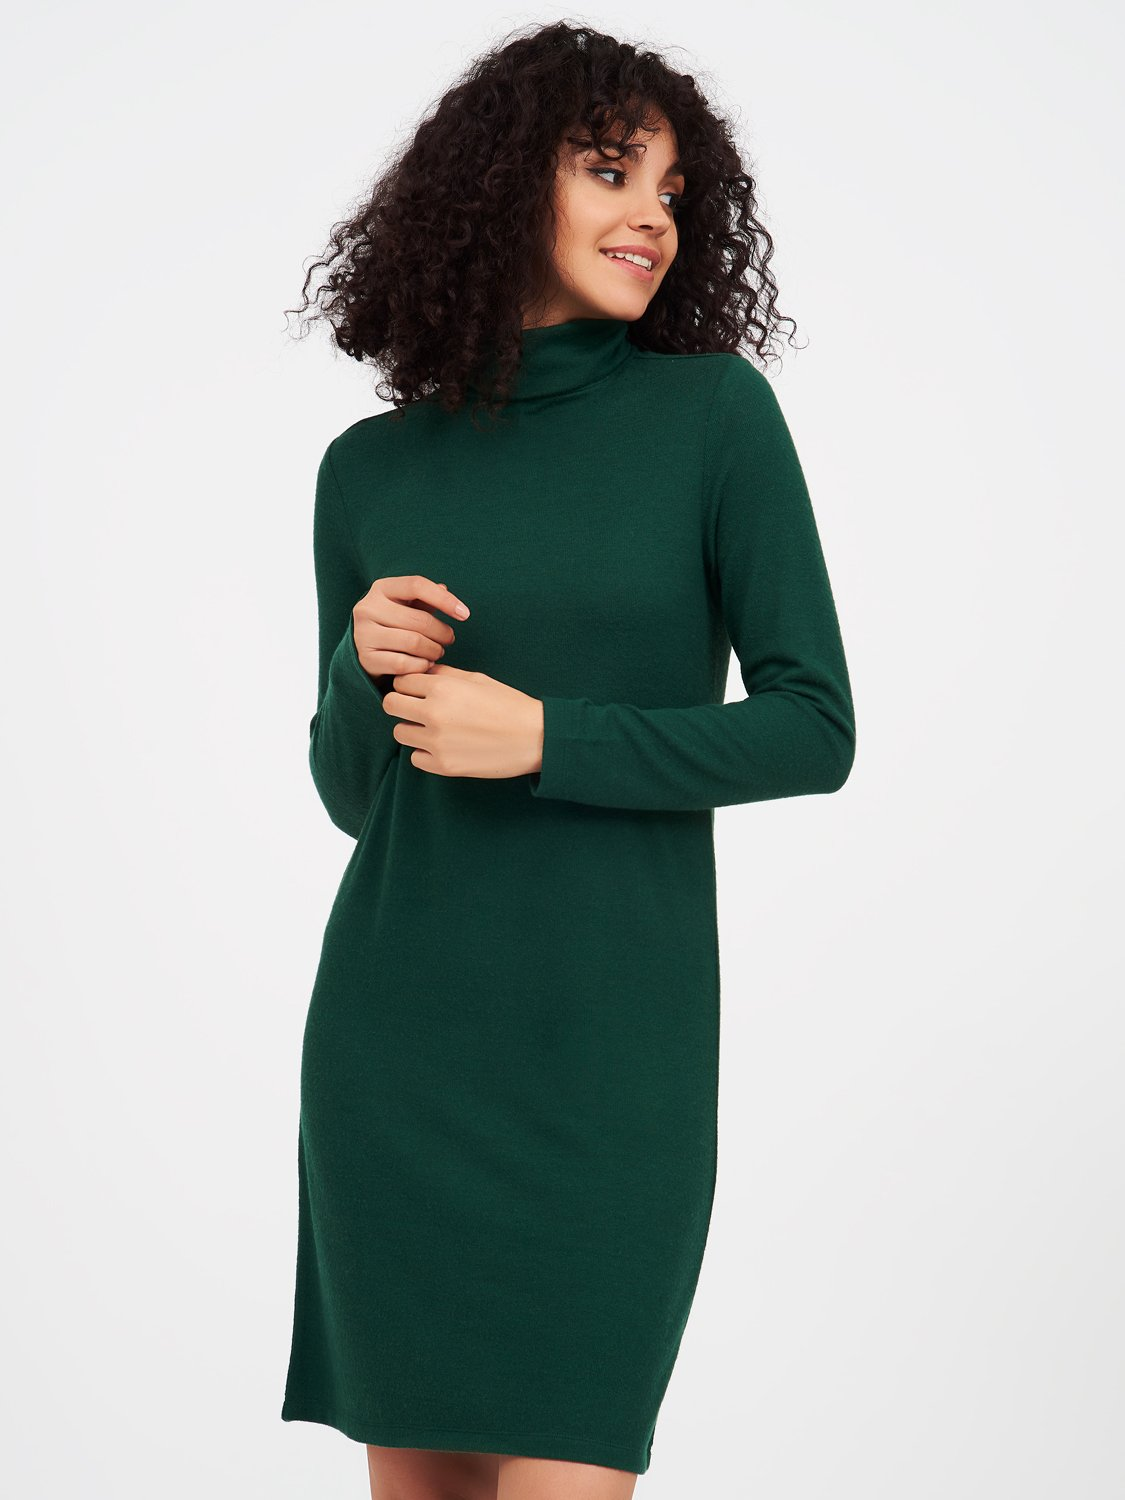 turtleneck a-line dress